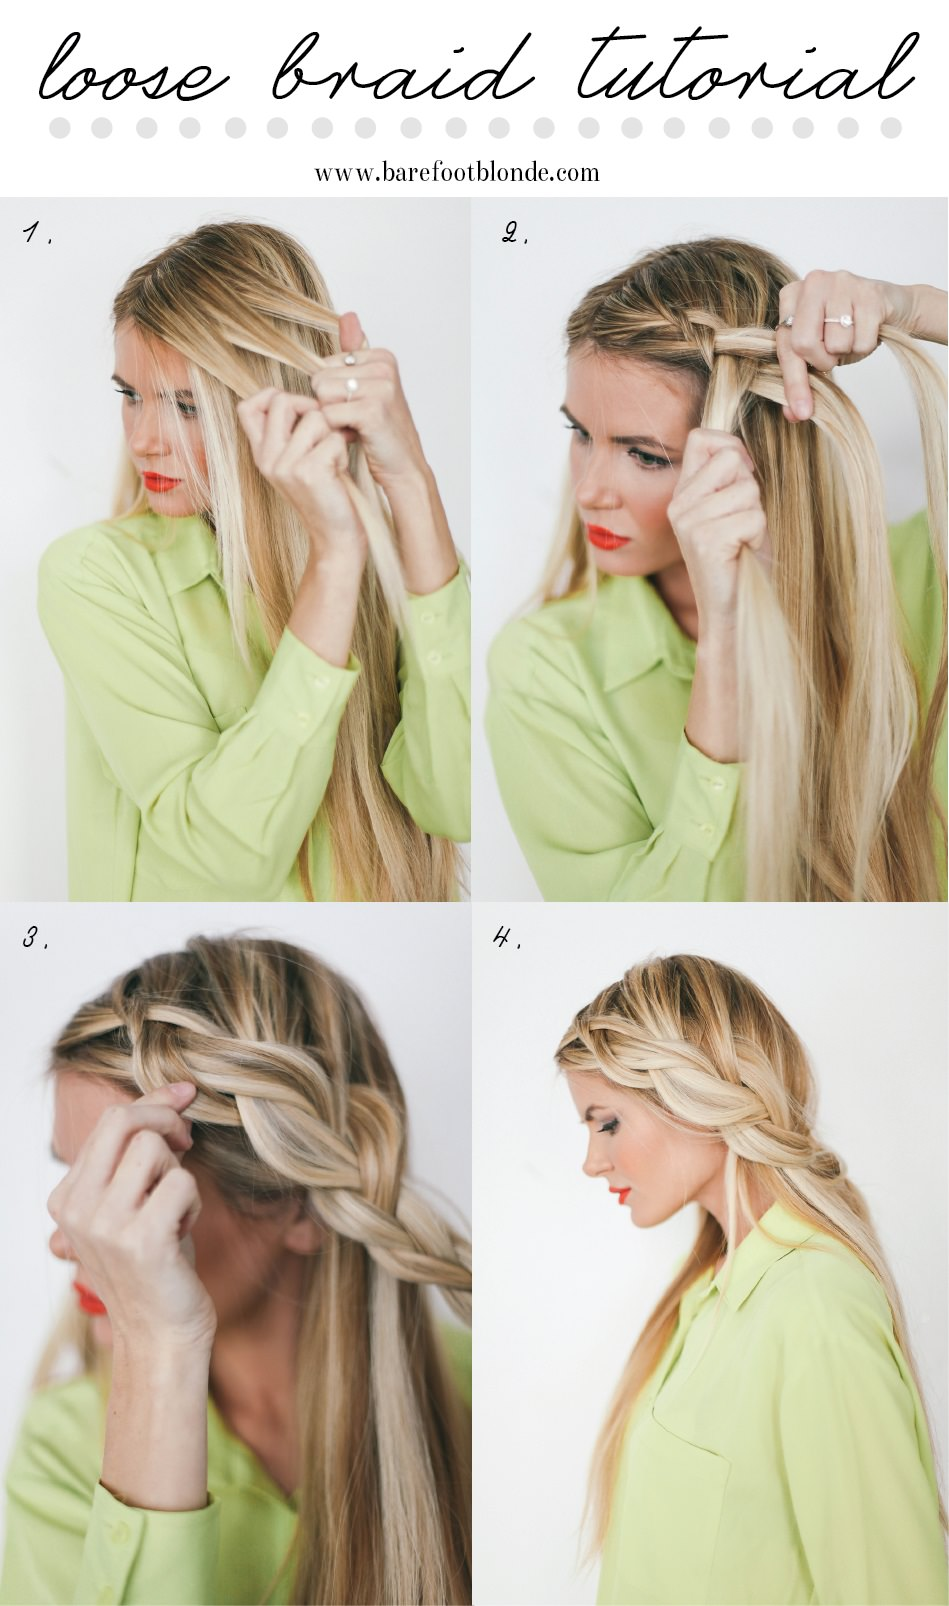 Summer Hairstyles Loose Braid Tutorial